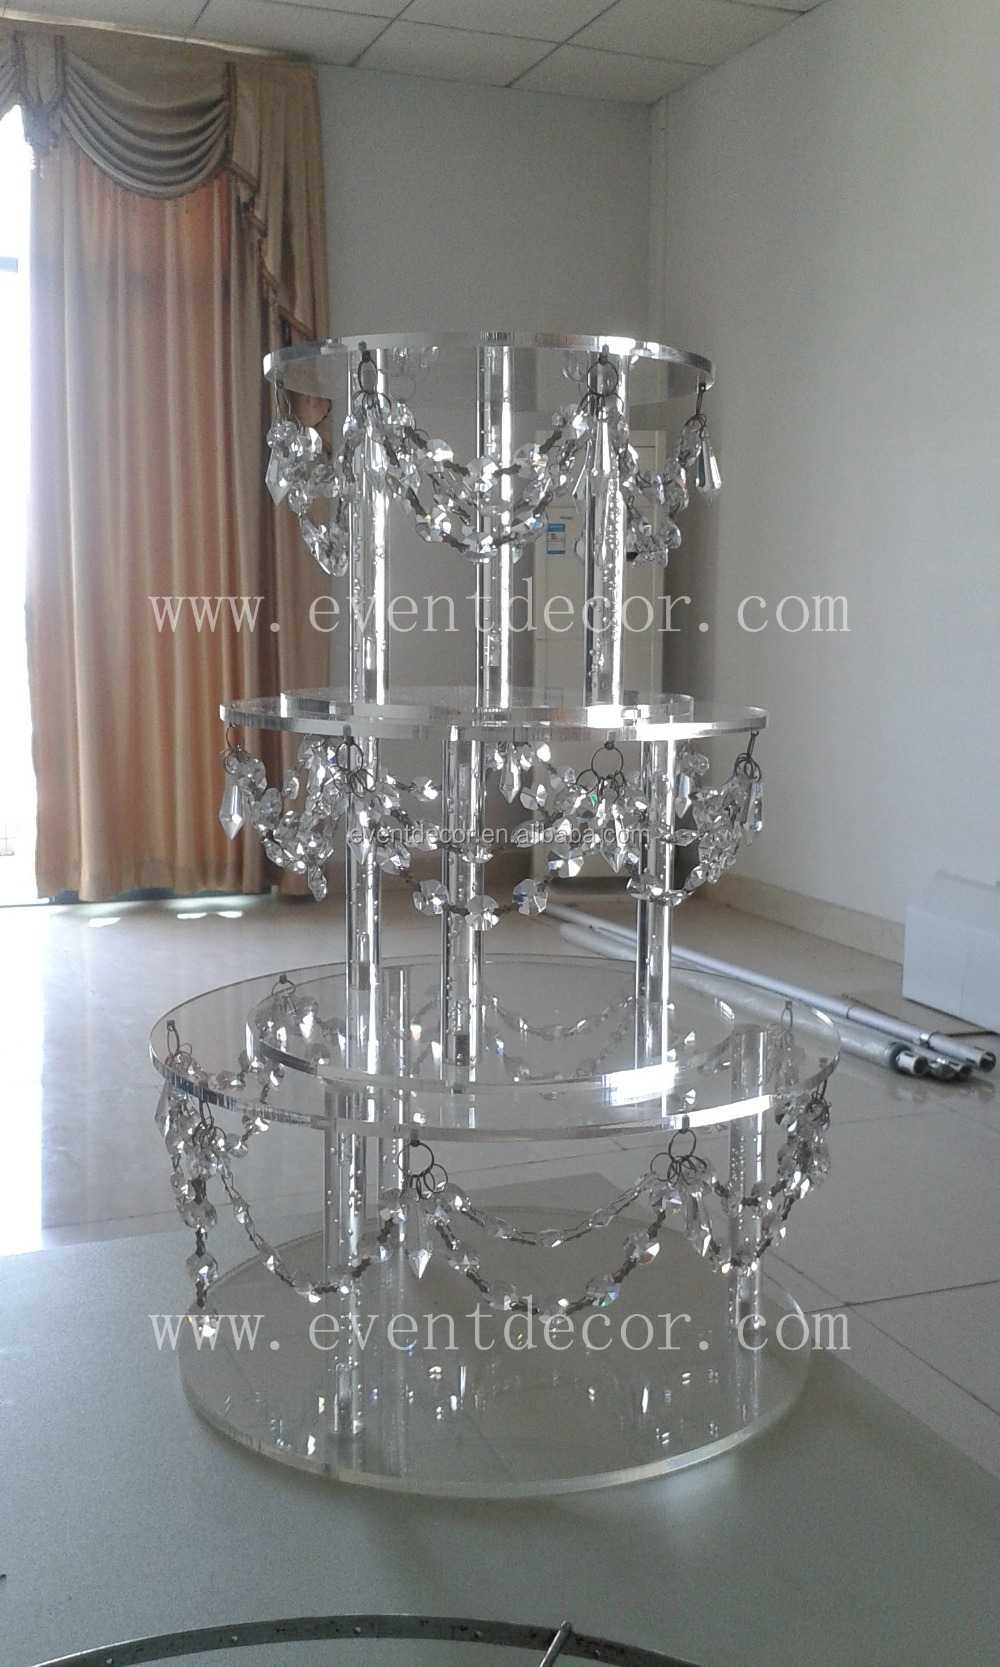 Trade Cake Stands : Wholesale crystal acrylic cake stand decorative hanging